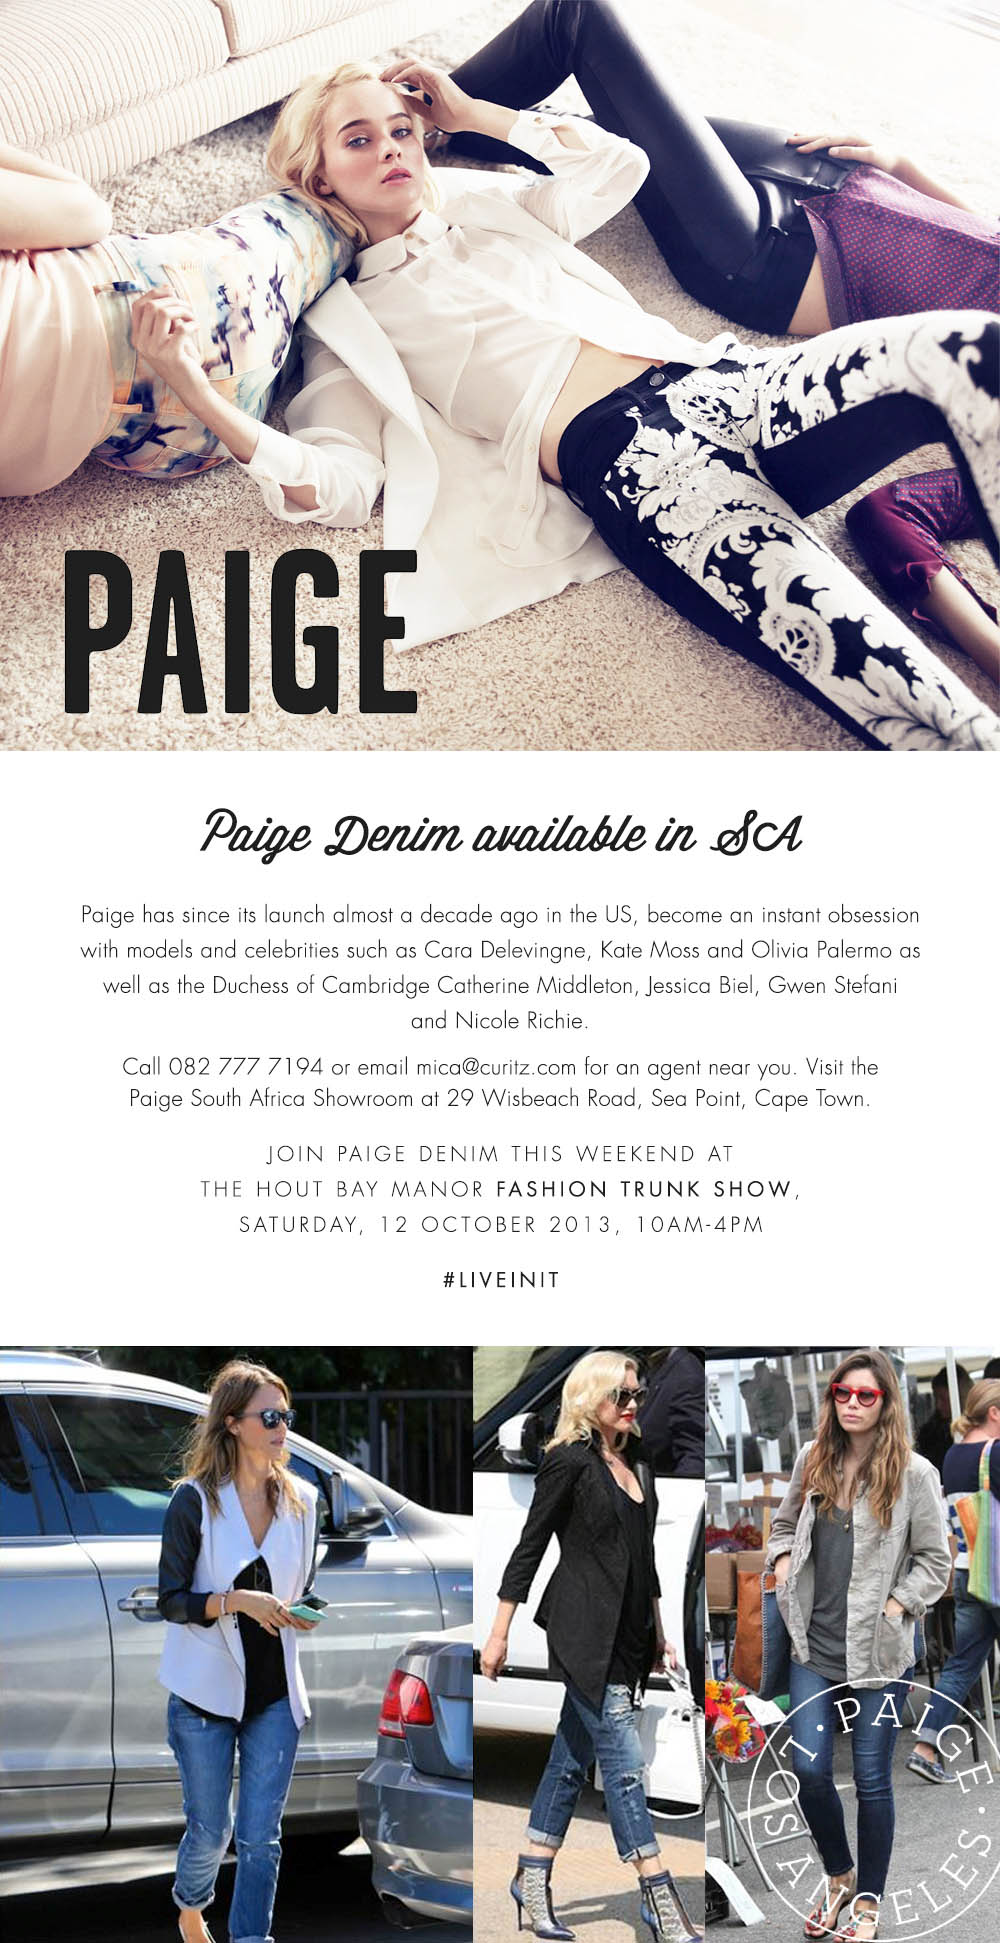 Paige Hout Bay Manor